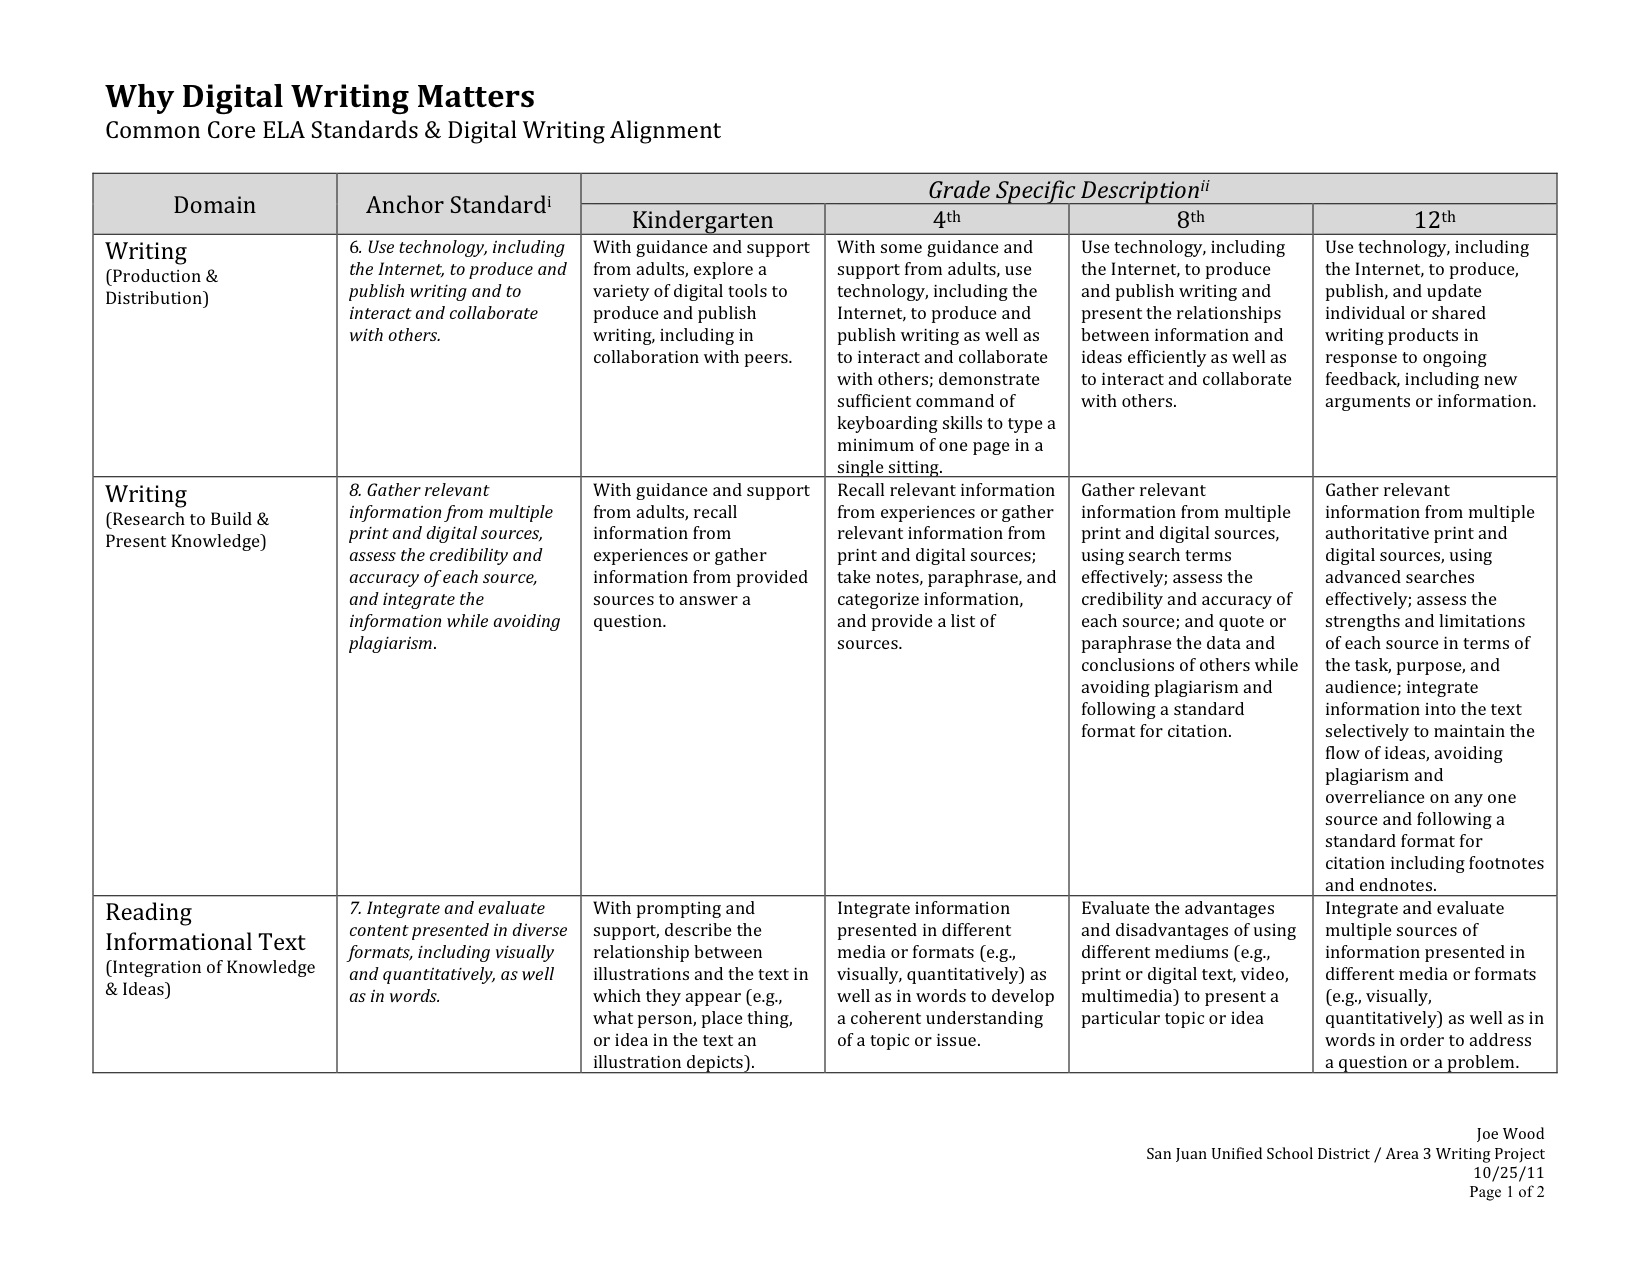 002 Research Paper Rubric High School Why Digital Writing Matters According To The Common Core Ela Wonderful Social Studies Pdf Argumentative Essay Doc Full